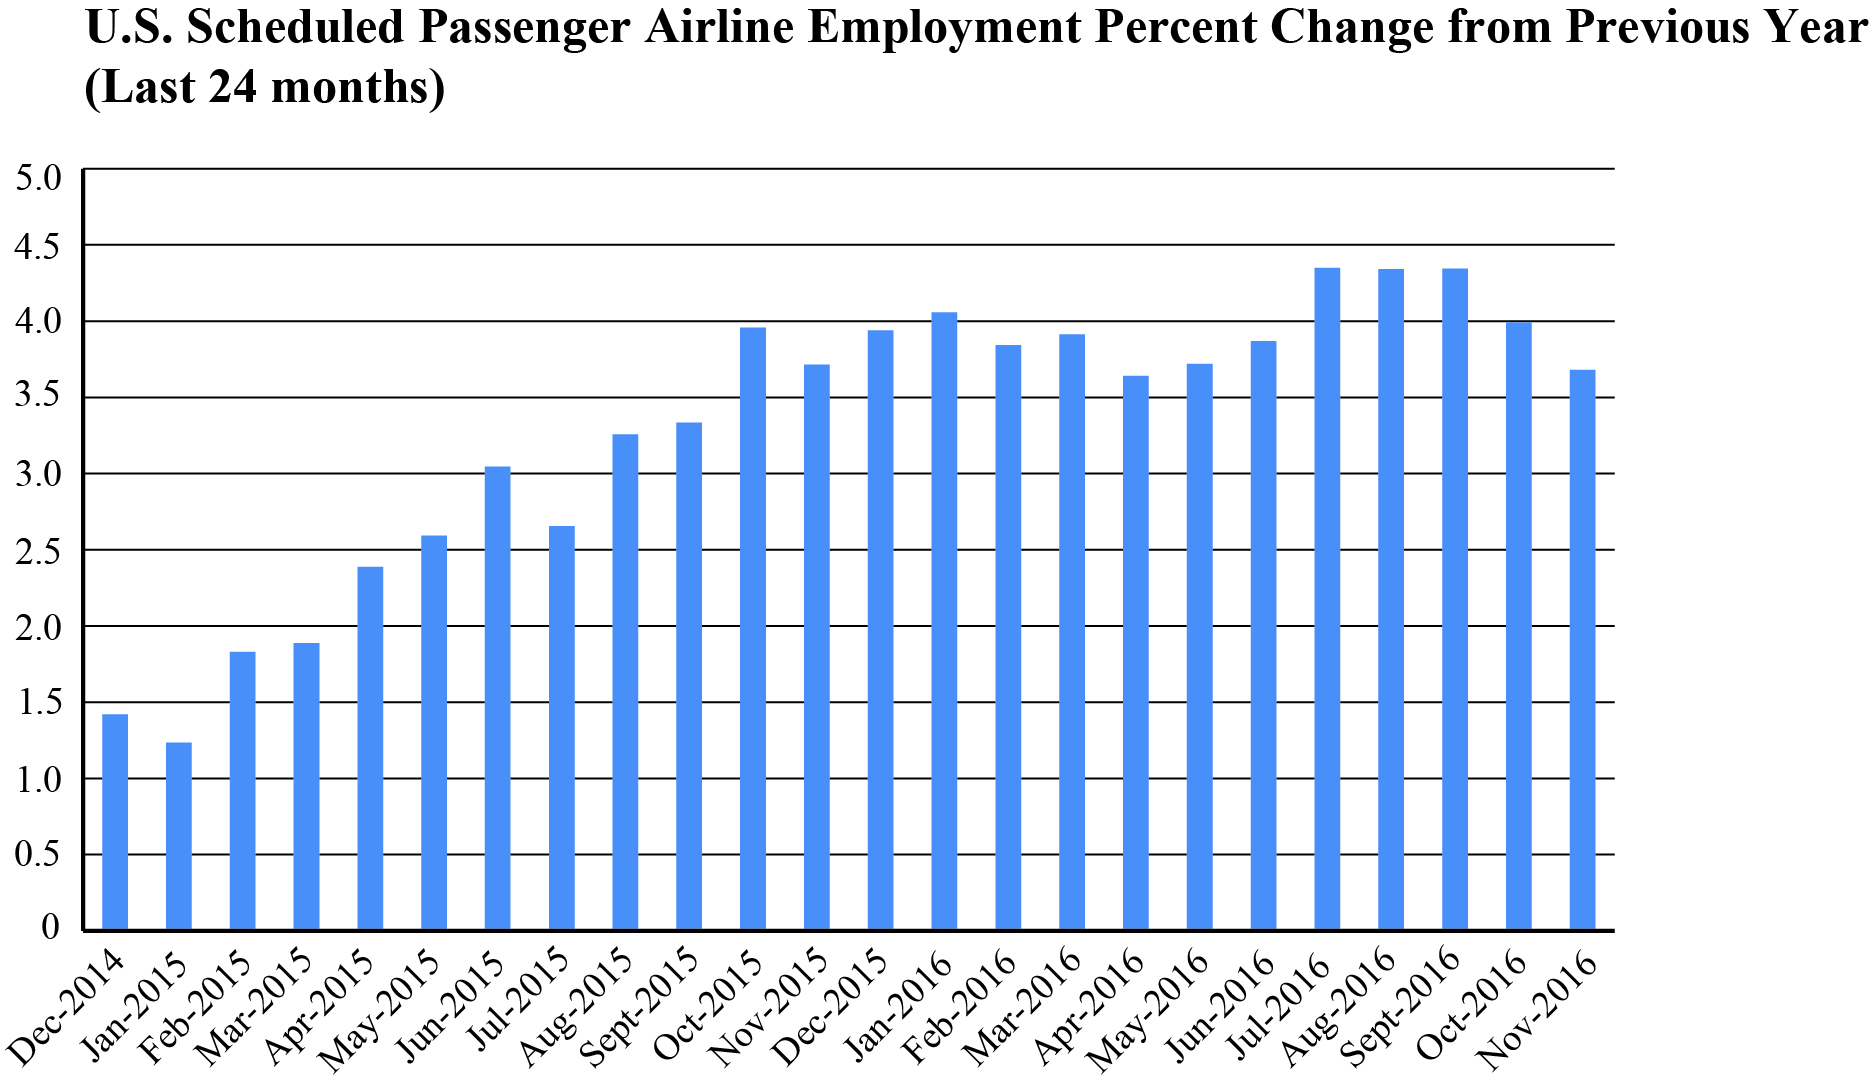 November 2016 Passenger Airline Employment Data